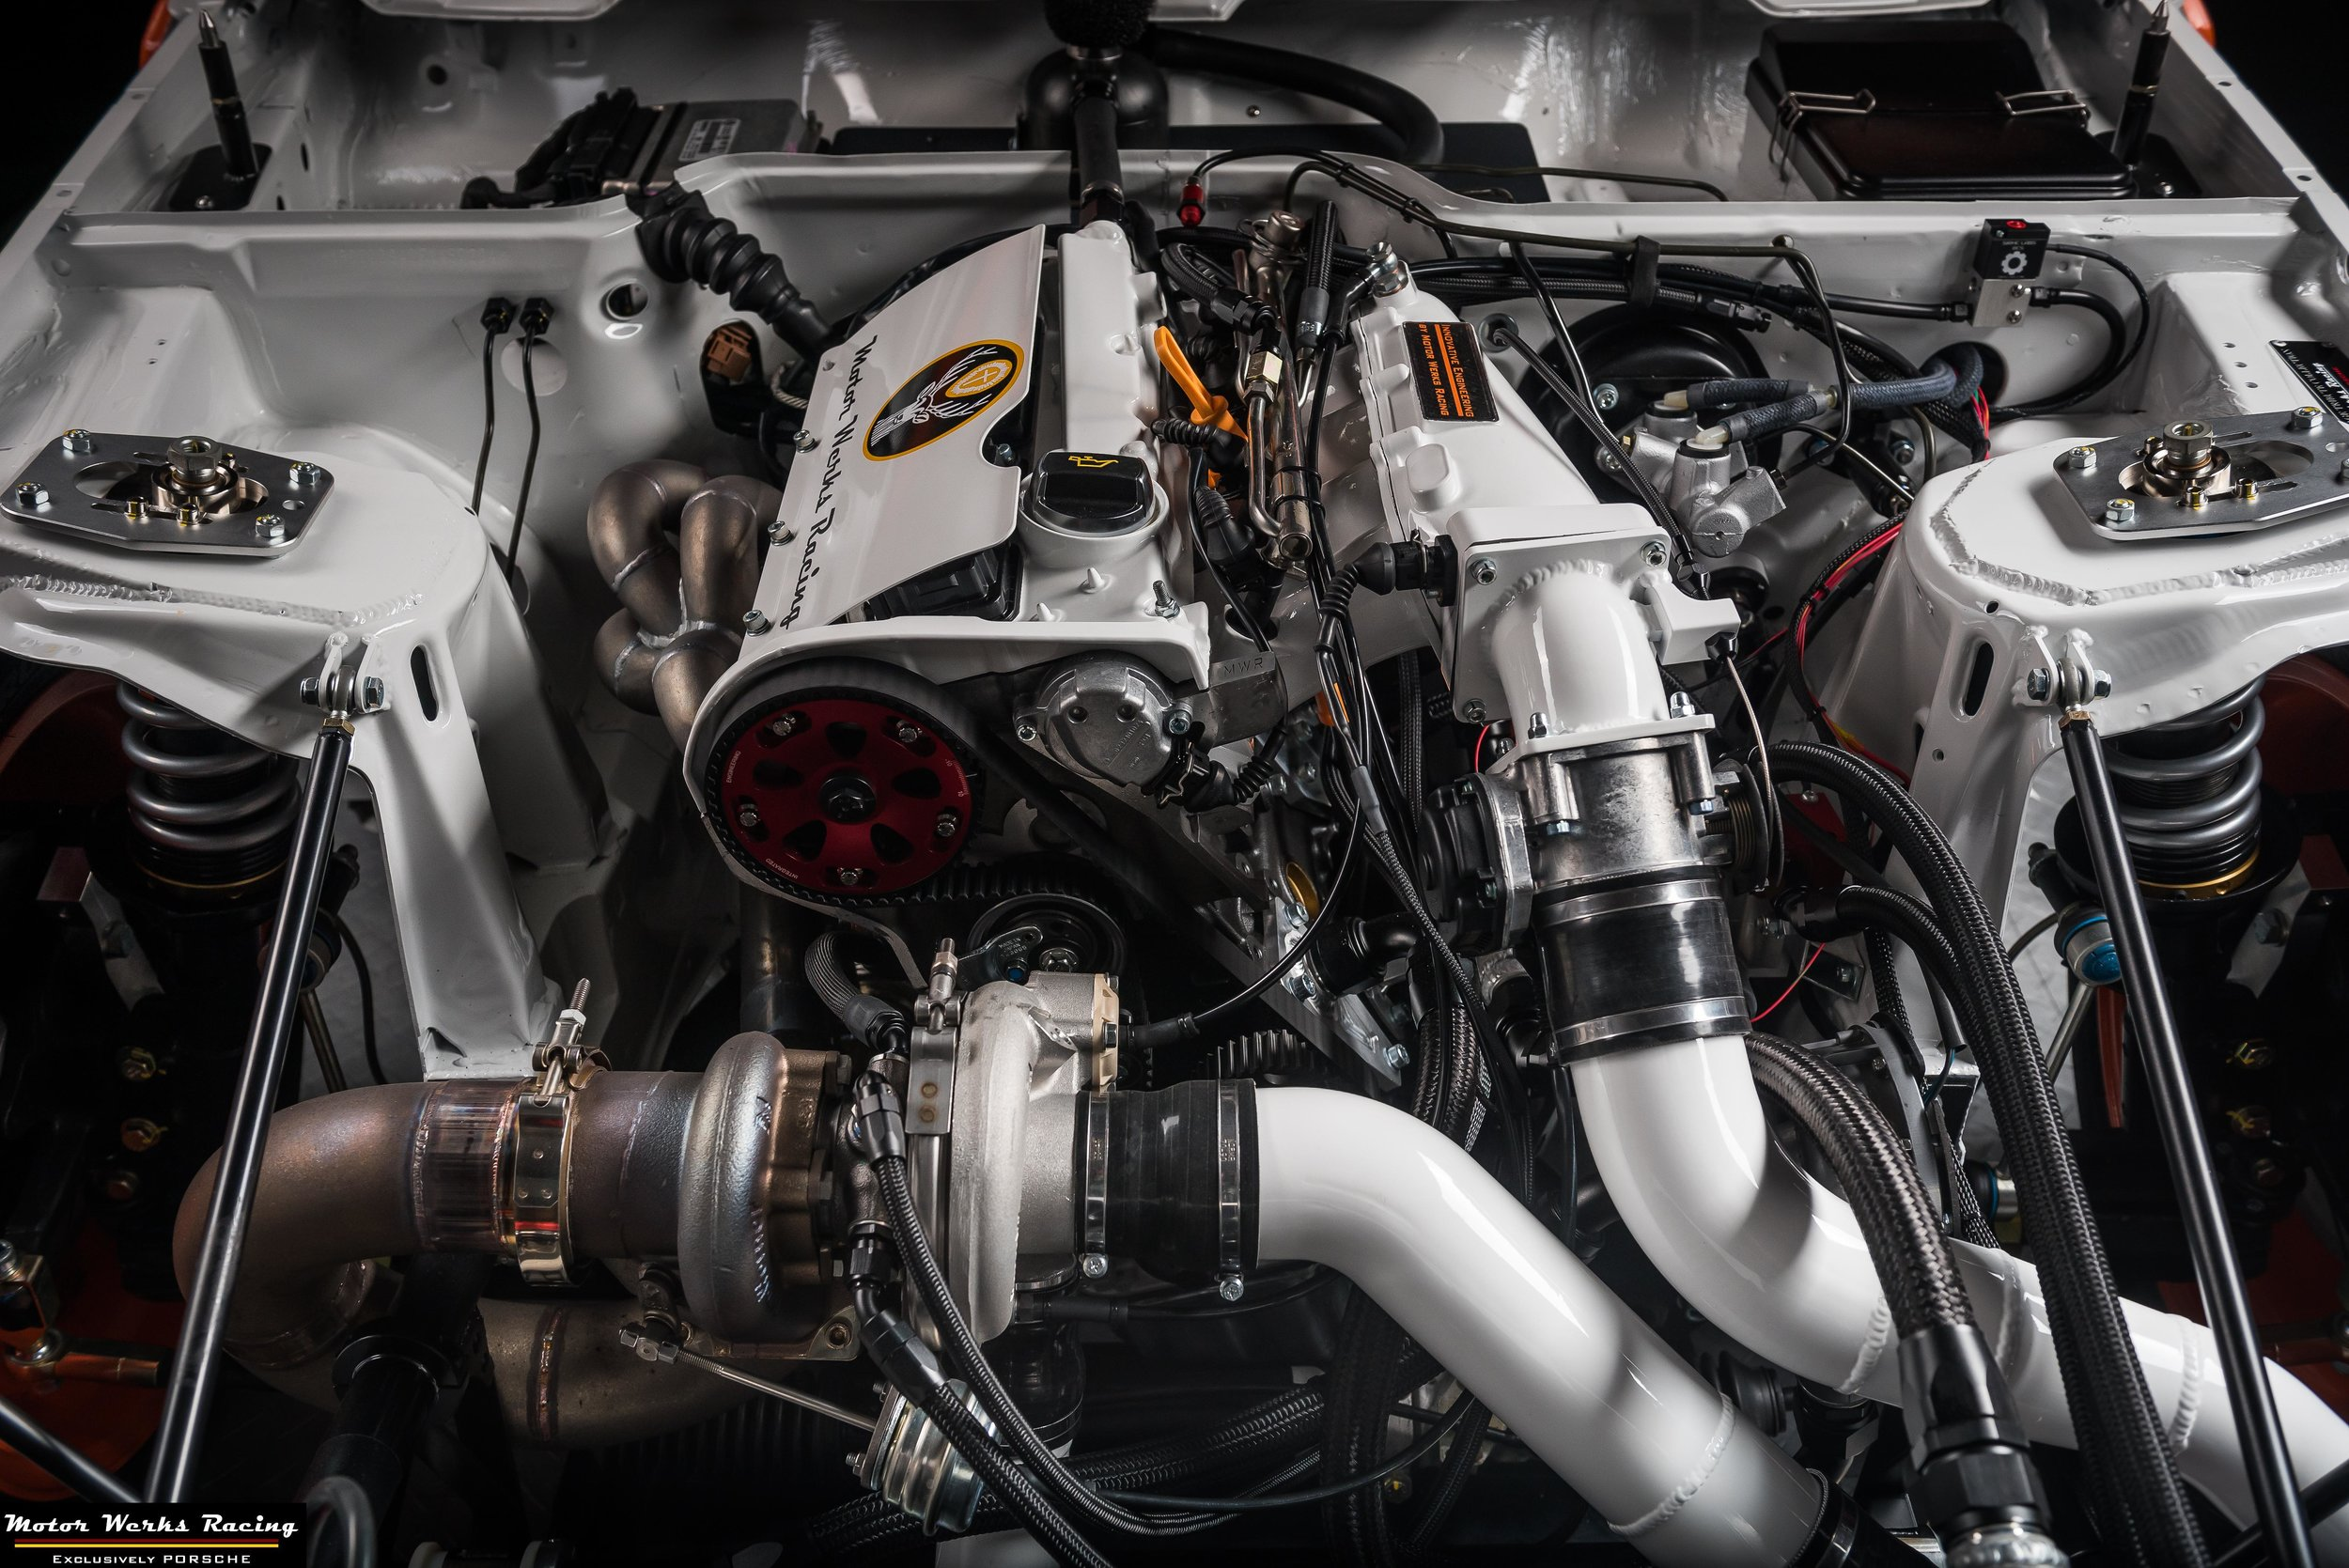 Motor Werks Racing Porsche 924 1.8T custom engine conversion